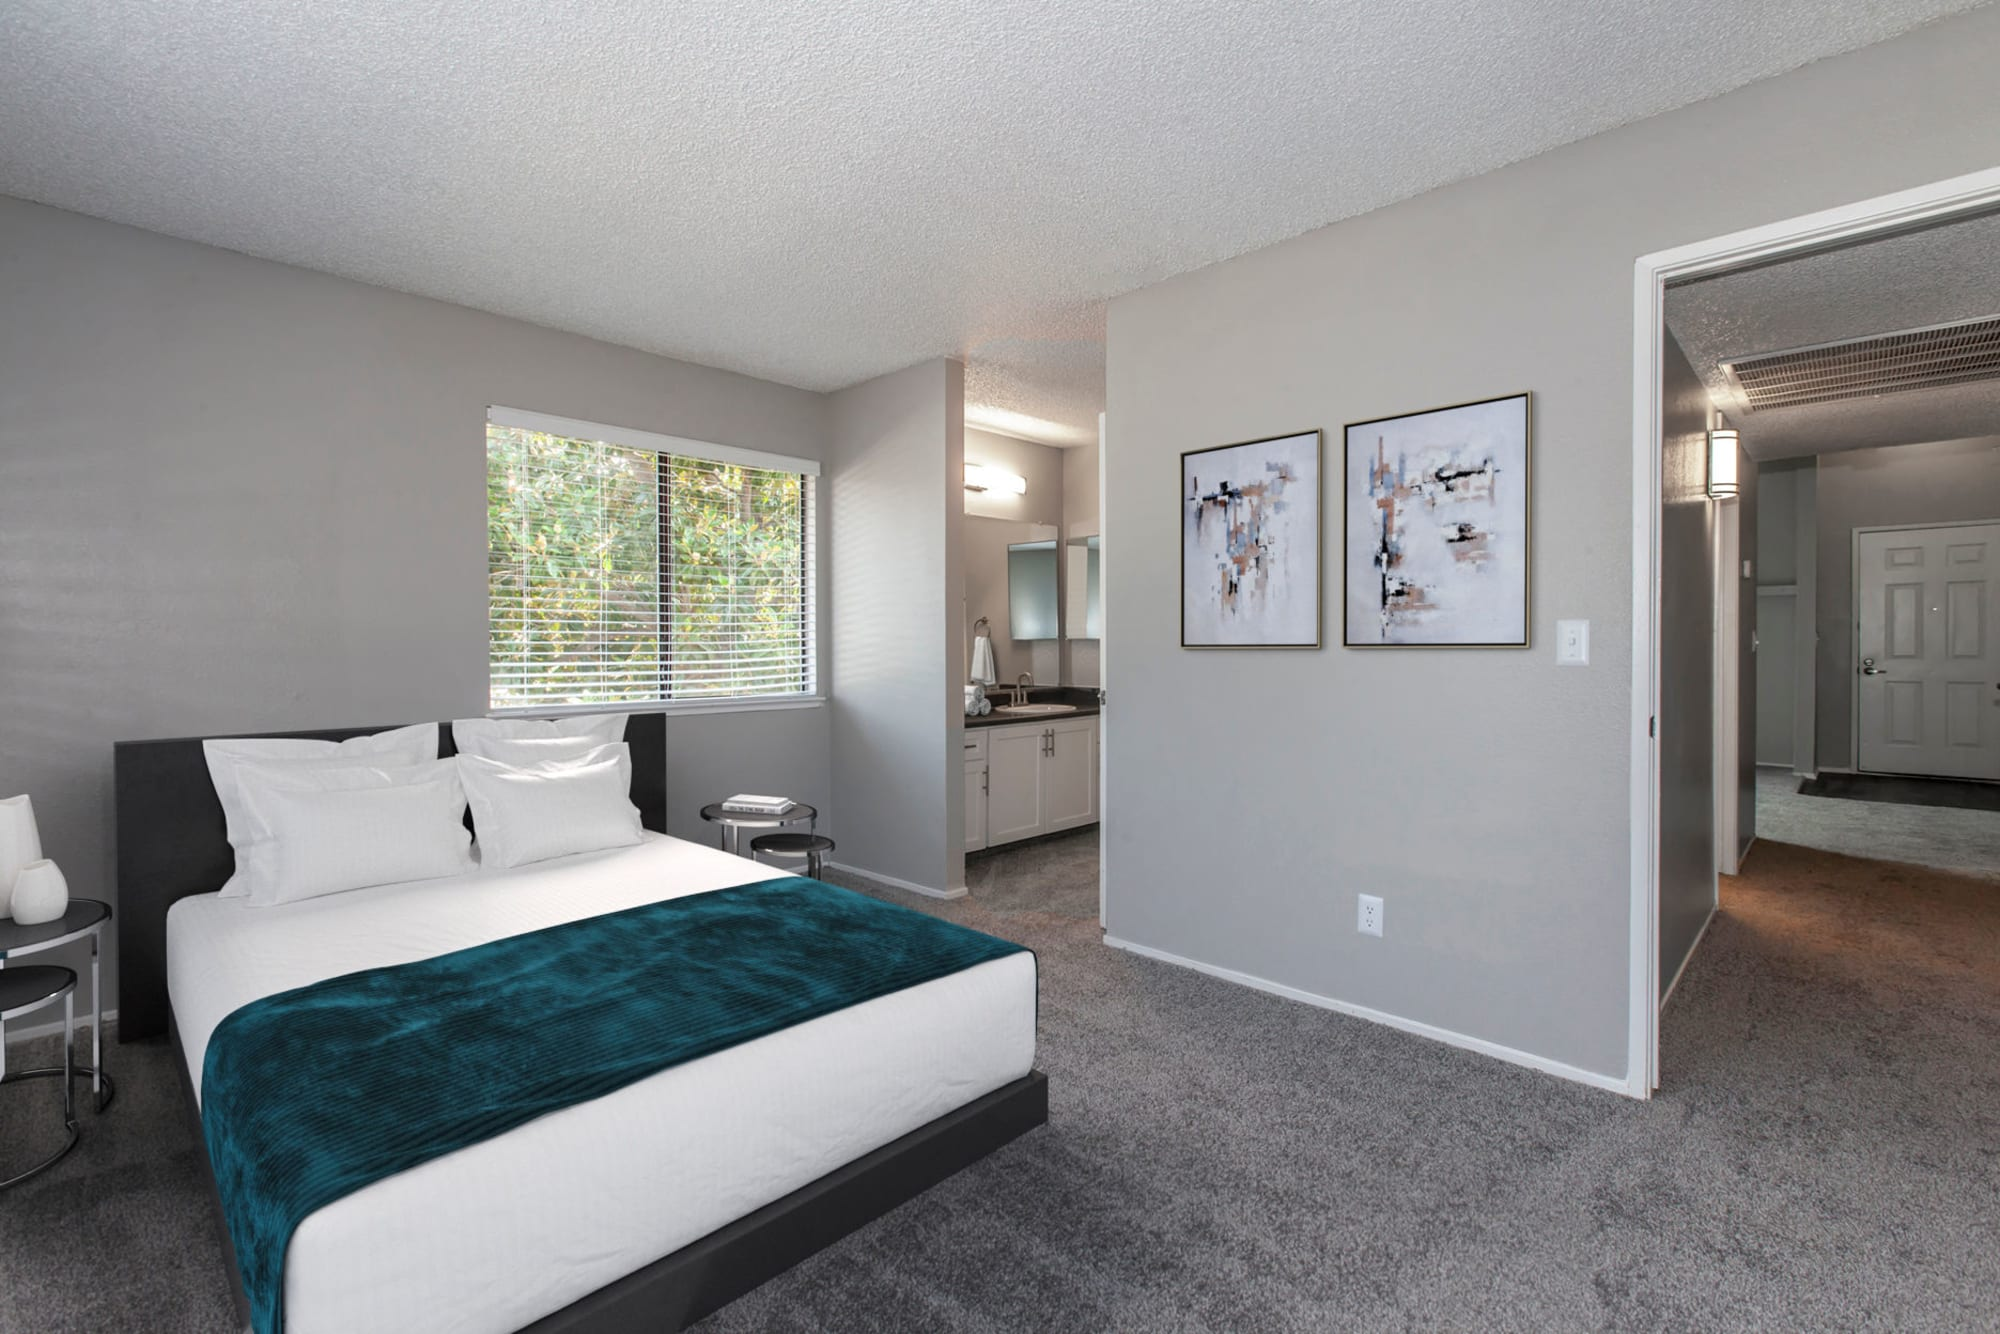 Spacious master bedroom with attached bathroom at Bennington Apartments in Fairfield, California